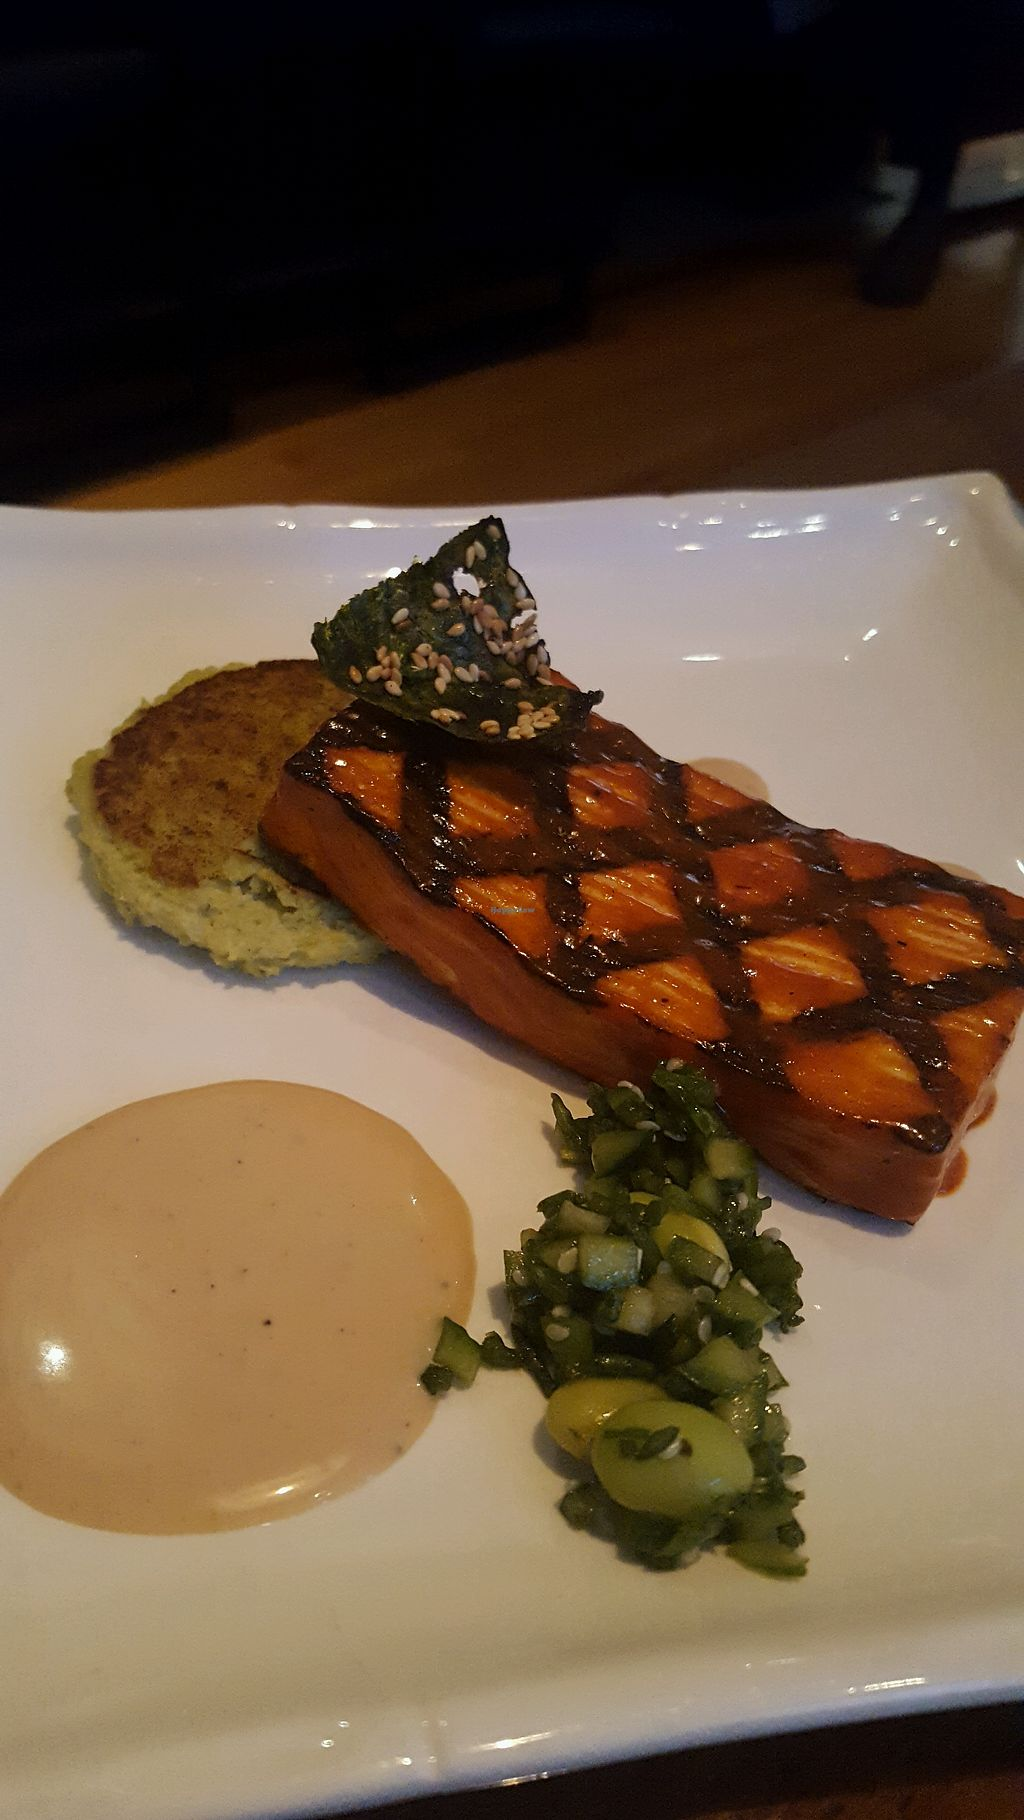 "Photo of Vedge  by <a href=""/members/profile/VeganScientist"">VeganScientist</a> <br/>tofu and edamame puree, very charred flavor <br/> May 25, 2018  - <a href='/contact/abuse/image/29361/404663'>Report</a>"